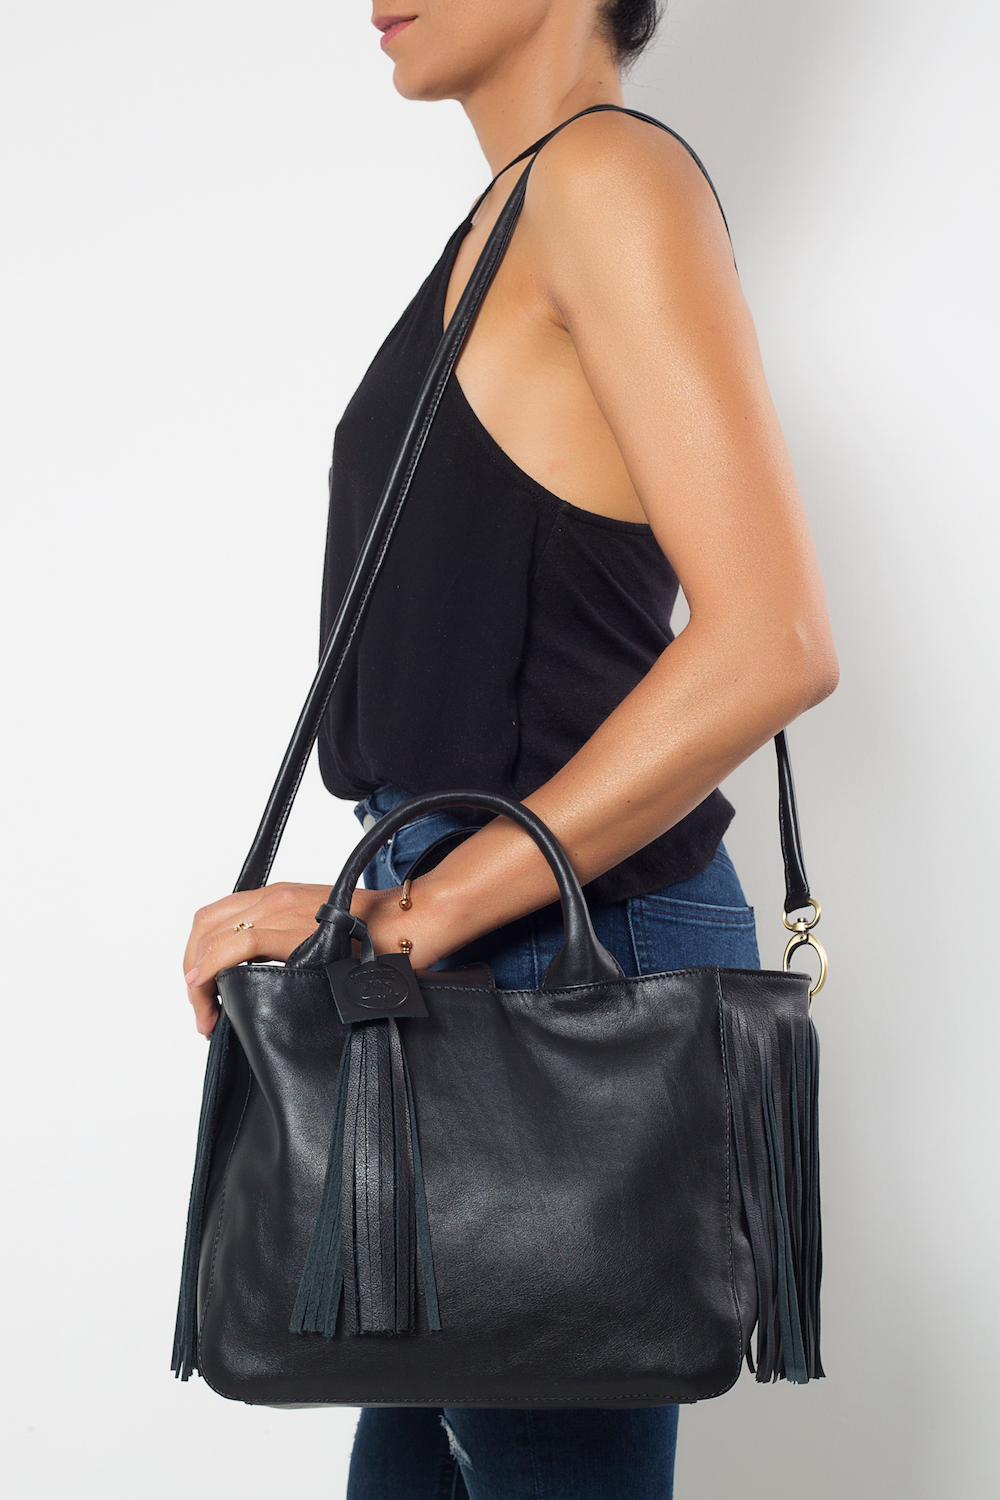 black leather bag, French brand